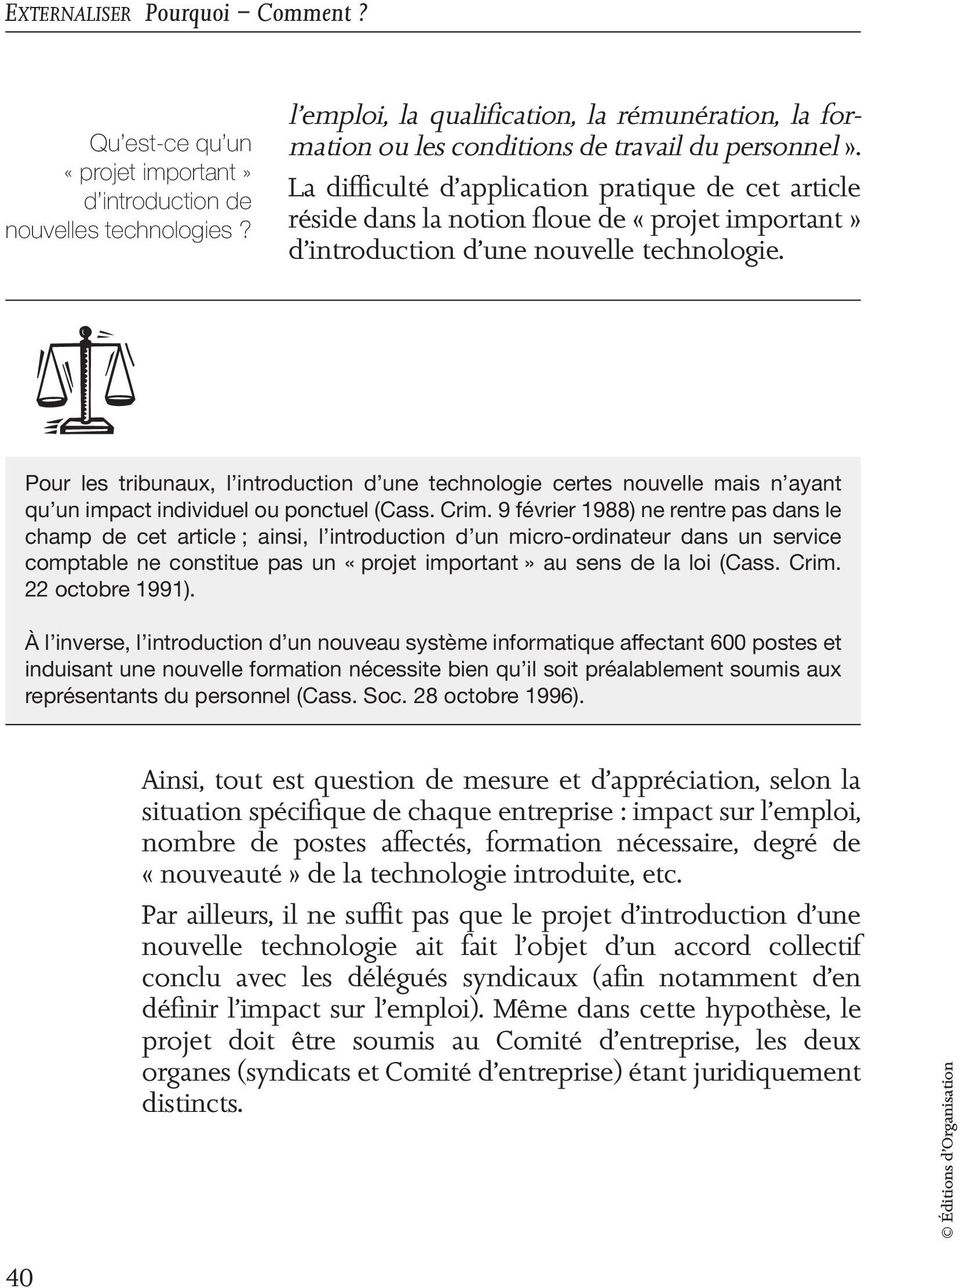 La difficulté d application pratique de cet article réside dans la notion floue de «projet important» d introduction d une nouvelle technologie.